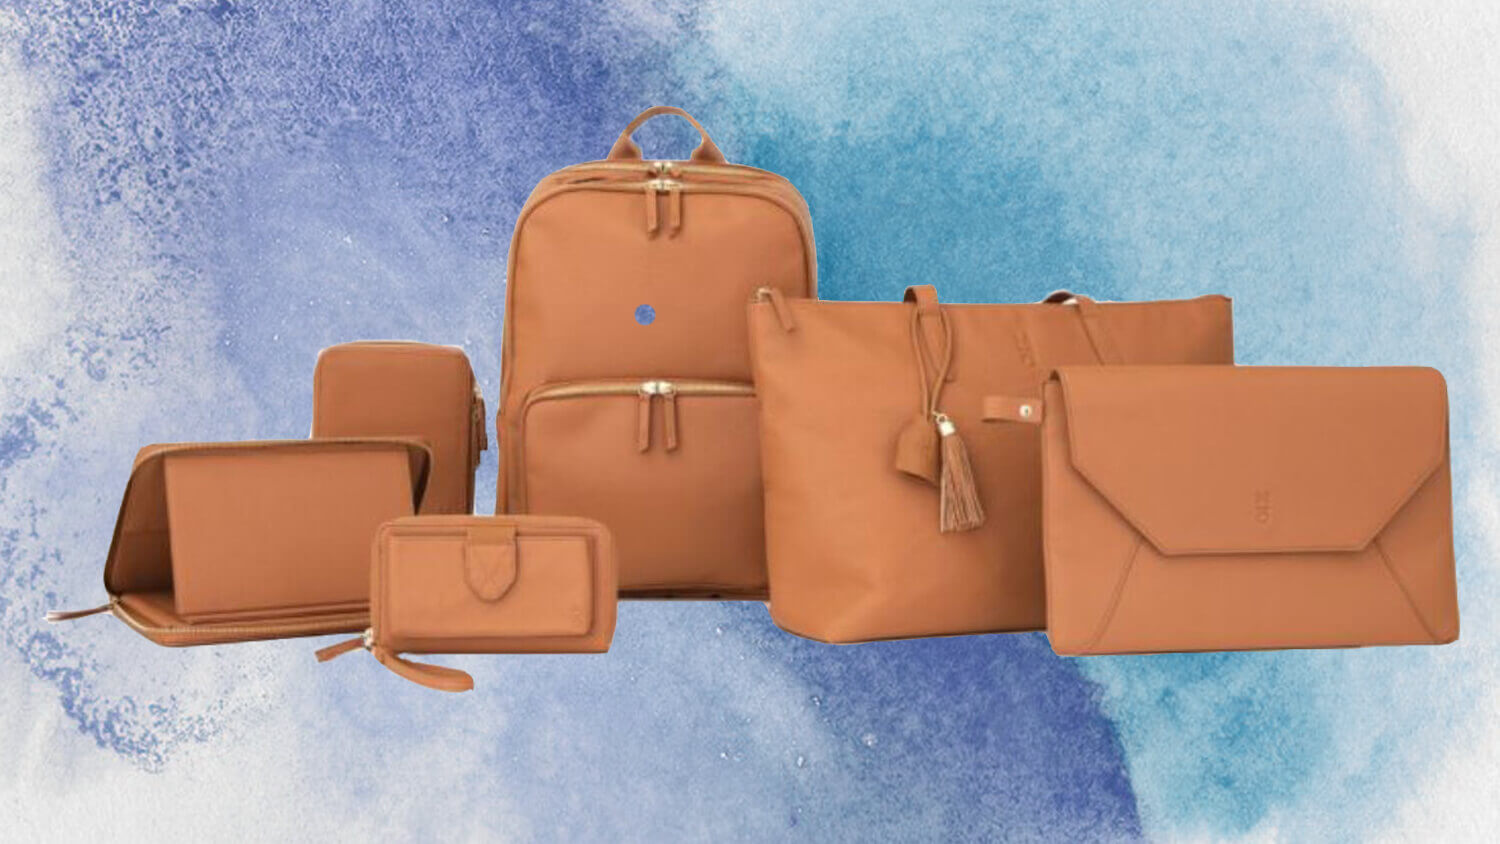 Walmart Launches Vegan Leather Bags, Backpacks, and Phone Cases By Motile